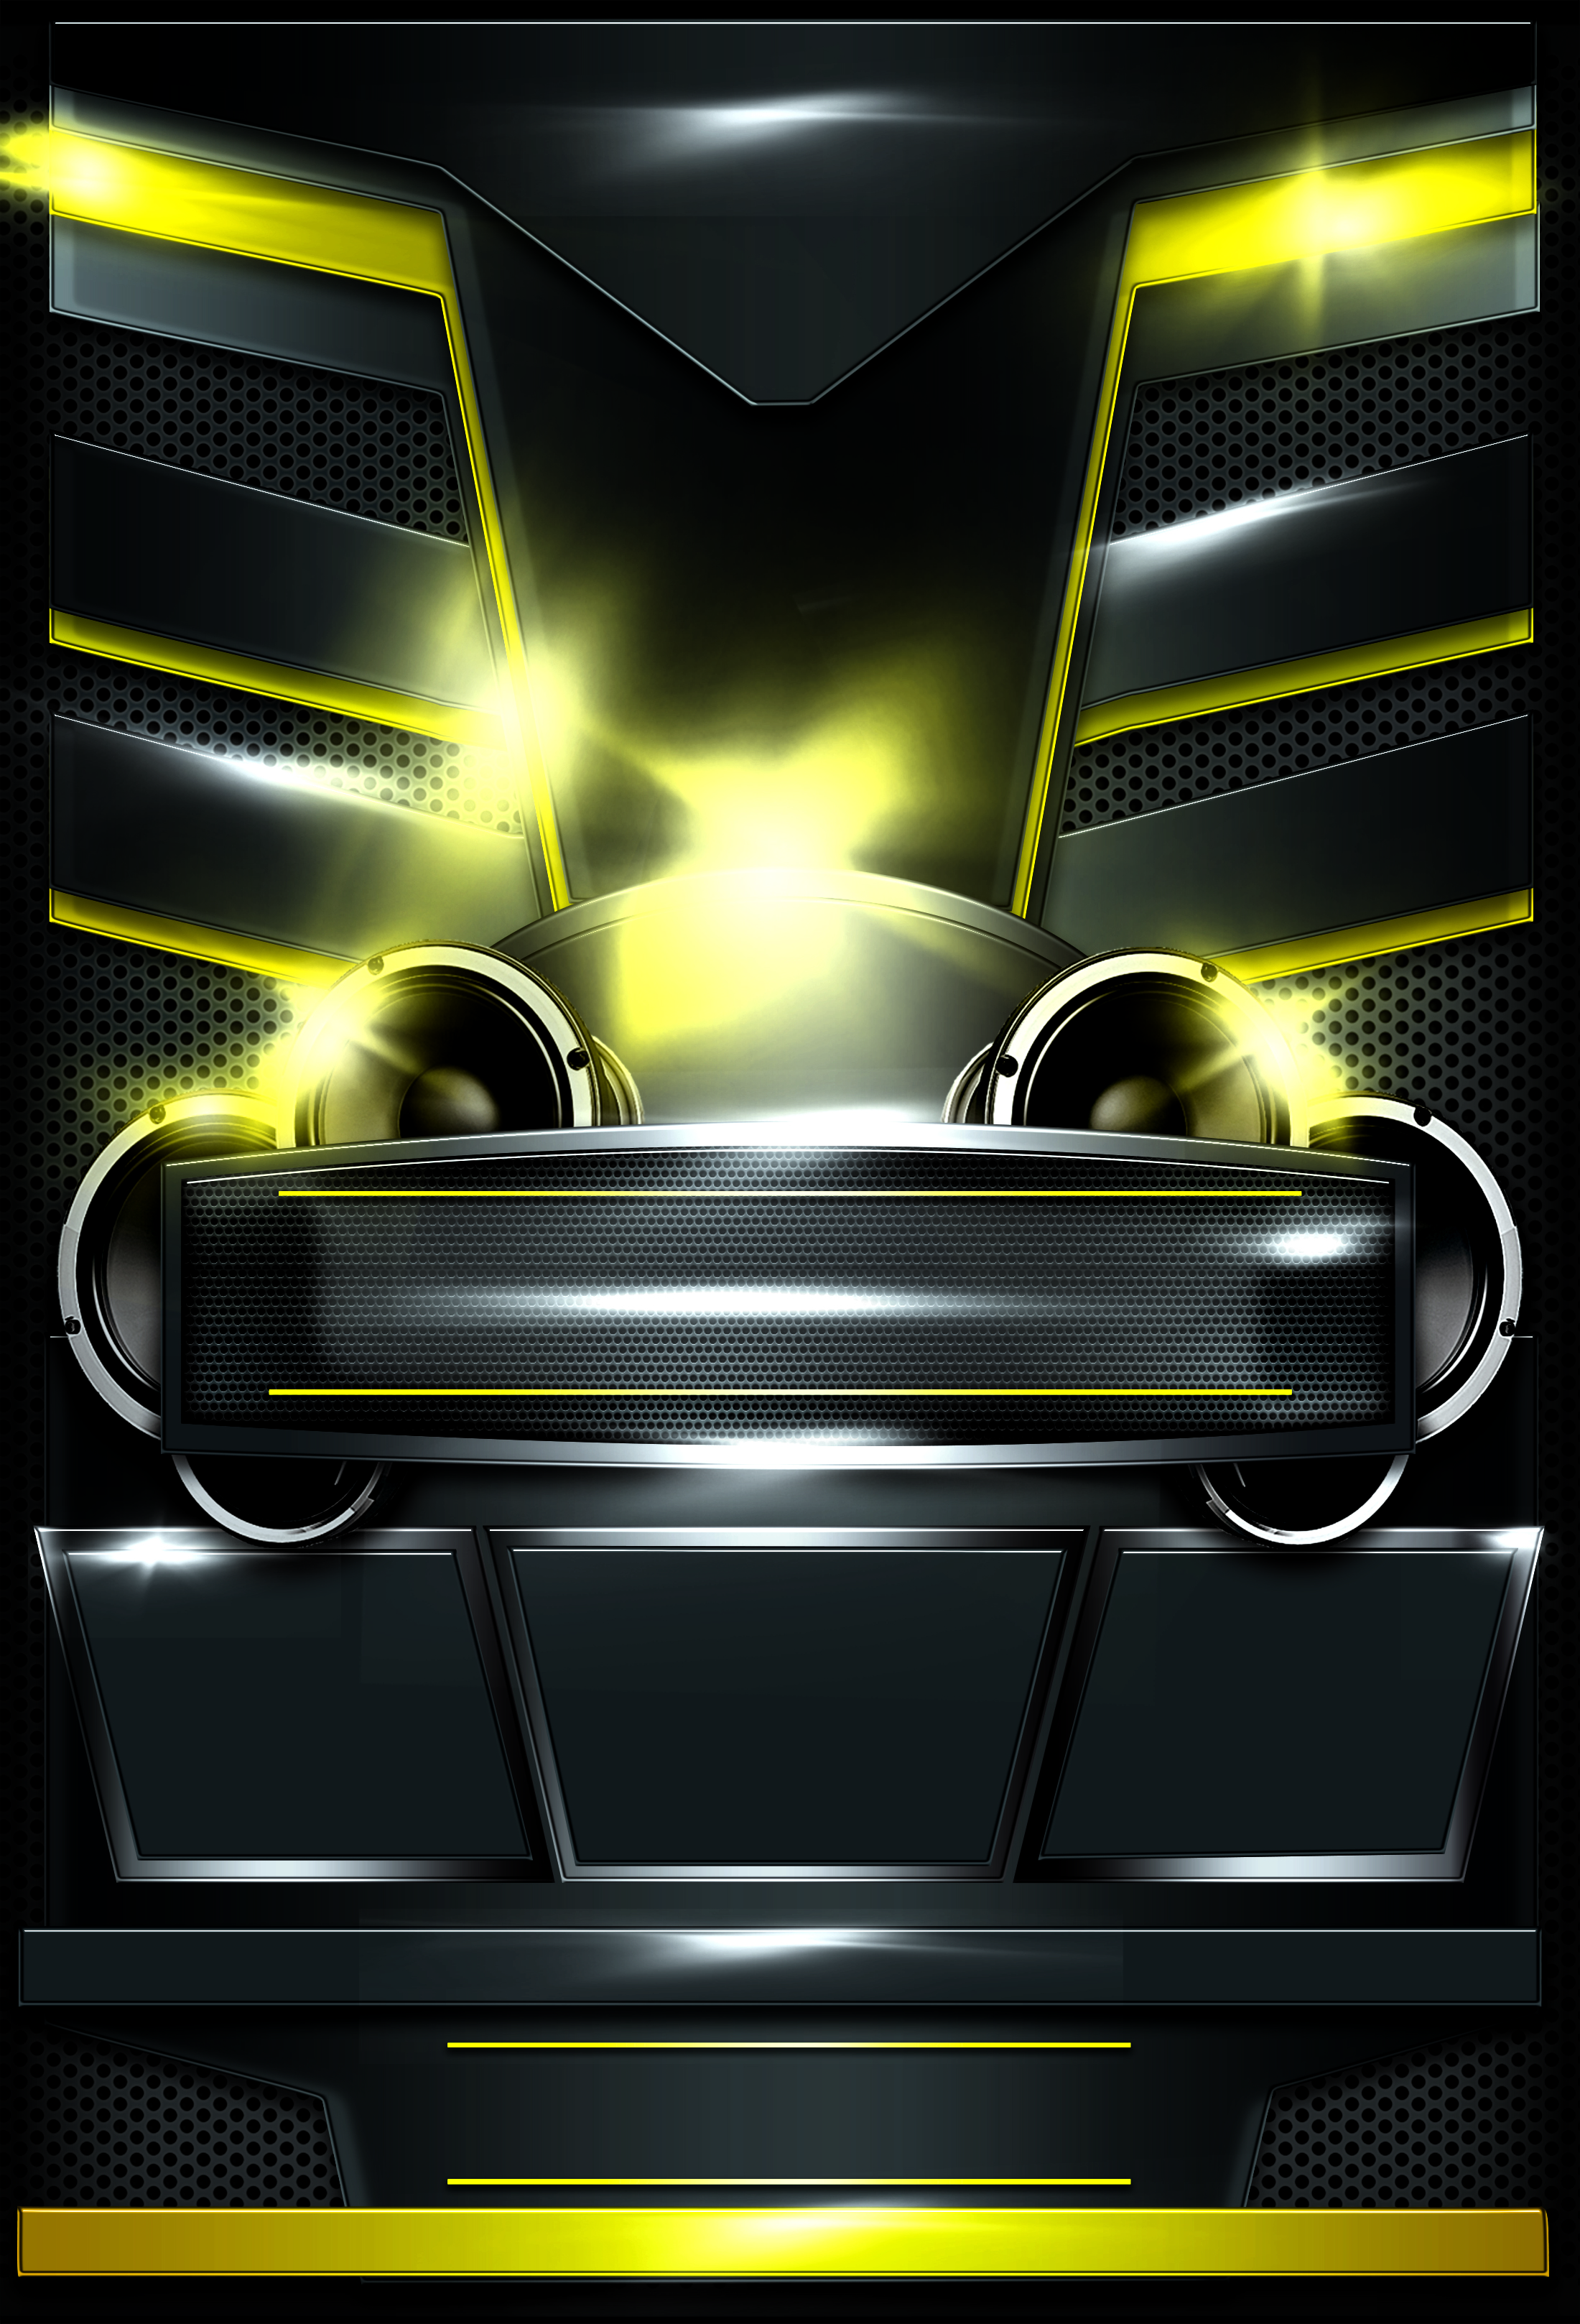 auto club party poster  car  club  party background image